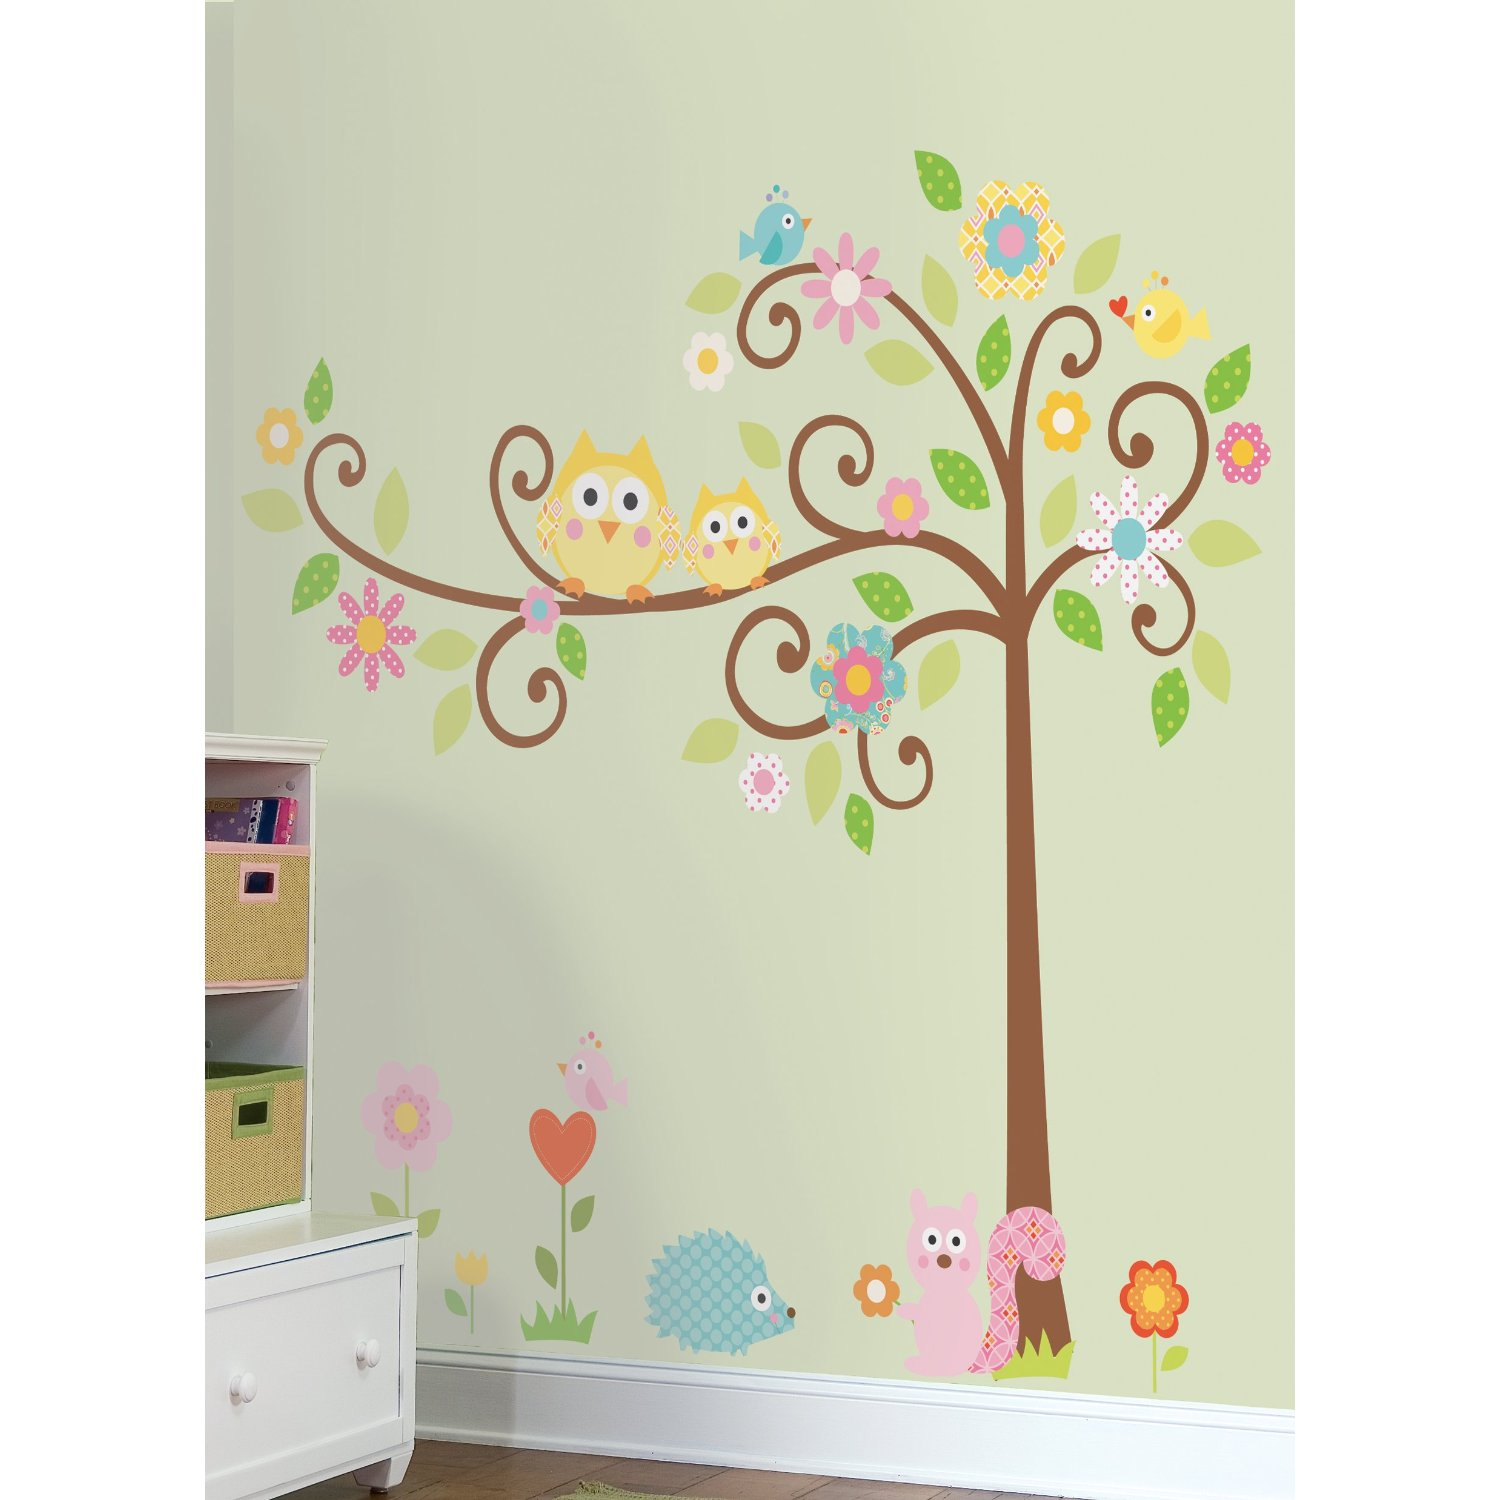 Nursery room ideas nursery wall decals for Room wall art ideas